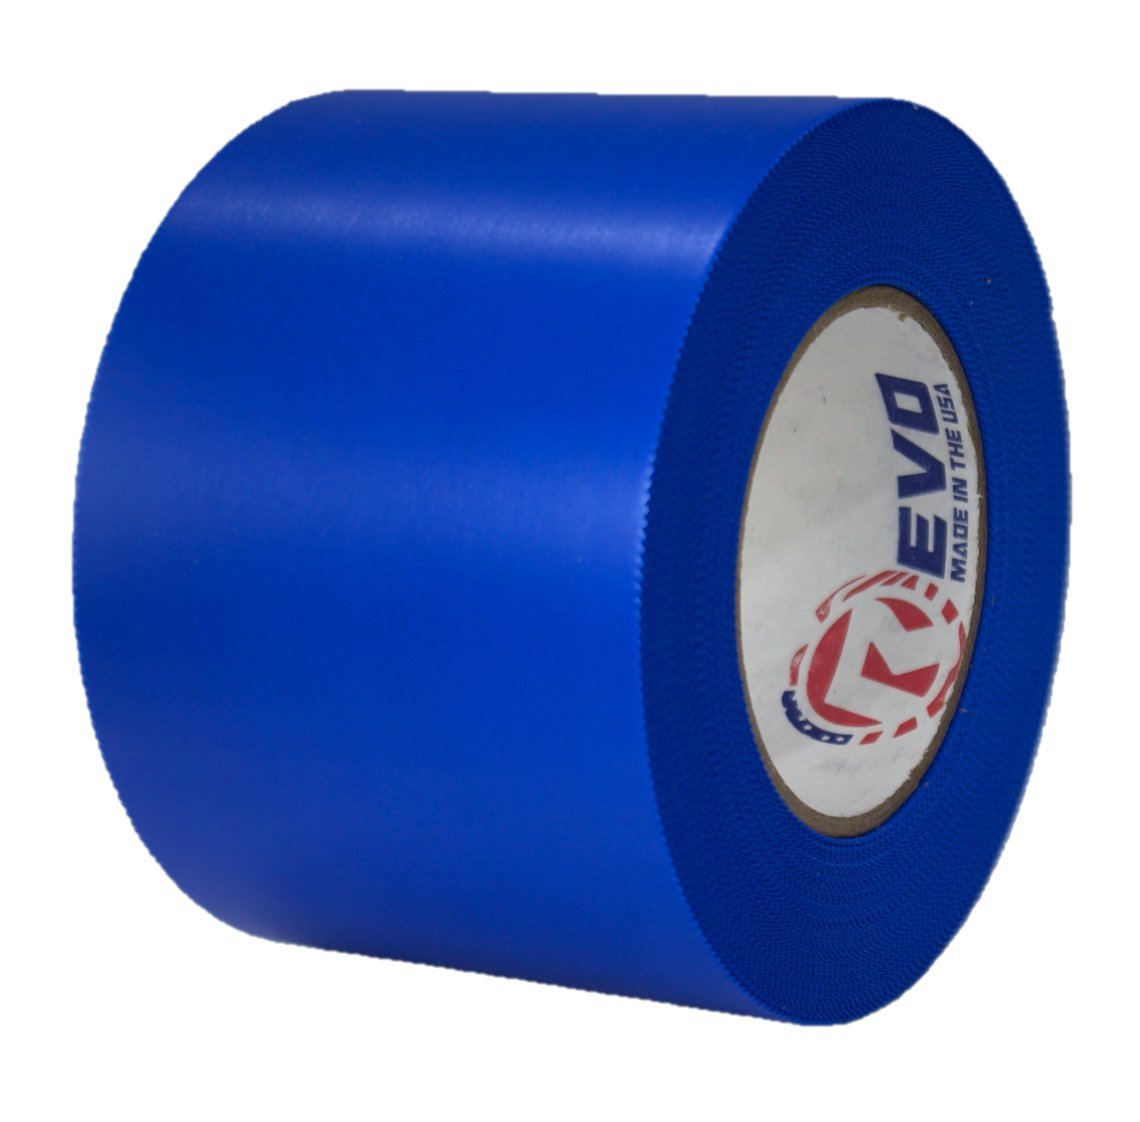 REVO Preservation Tape/Heat Shrink Wrap Tape (4'' x 60 yards) MADE IN USA (BLUE) Poly Tape - Electrical Tape - Boat Winterizing Tape (PINKED EDGE) SINGLE ROLL (HEAVY DUTY: 9 MIL THICKNESS)